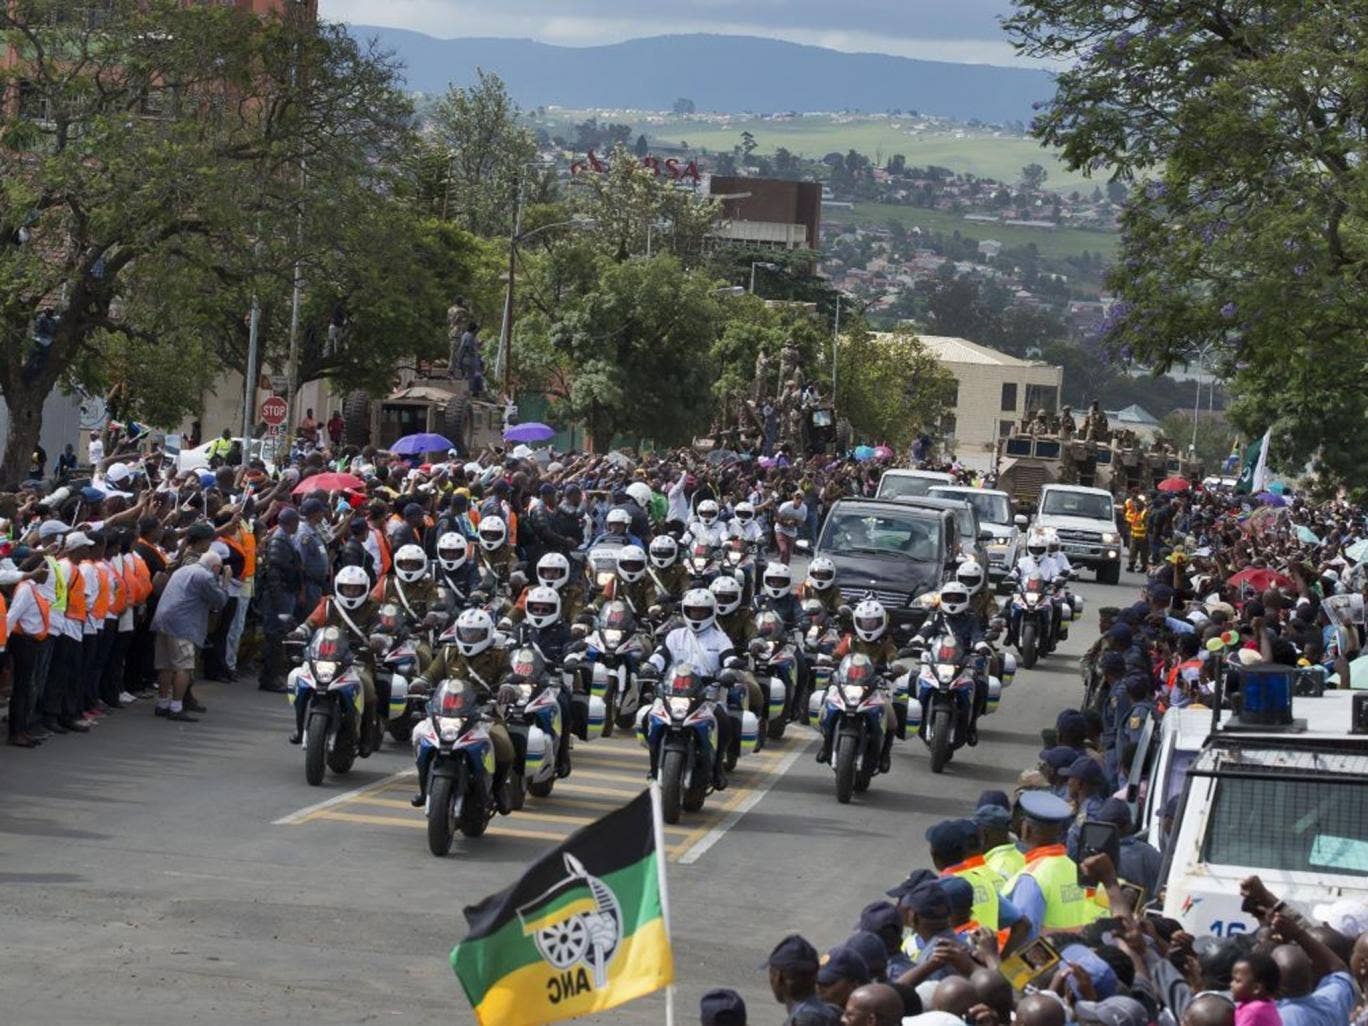 The motorcade transporting the body of Nelson Mandela, in black hearse, passes through crowds of mourners gathered in the town of Mthatha on its way to Qunu